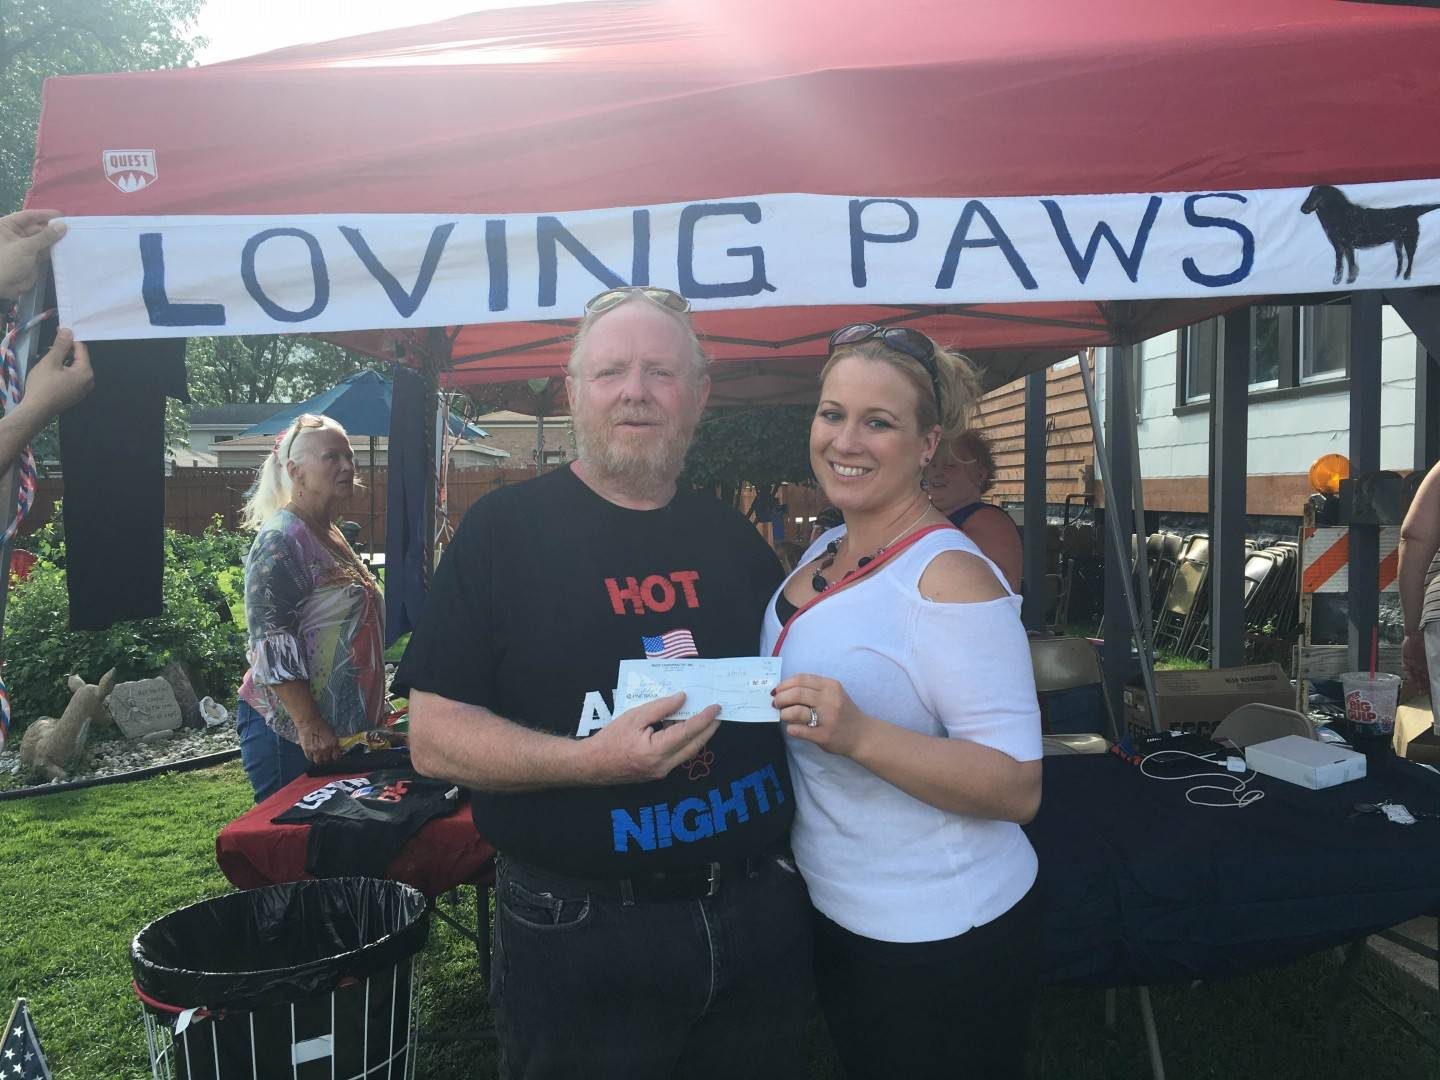 Donating at Loving Paws Fundraiser